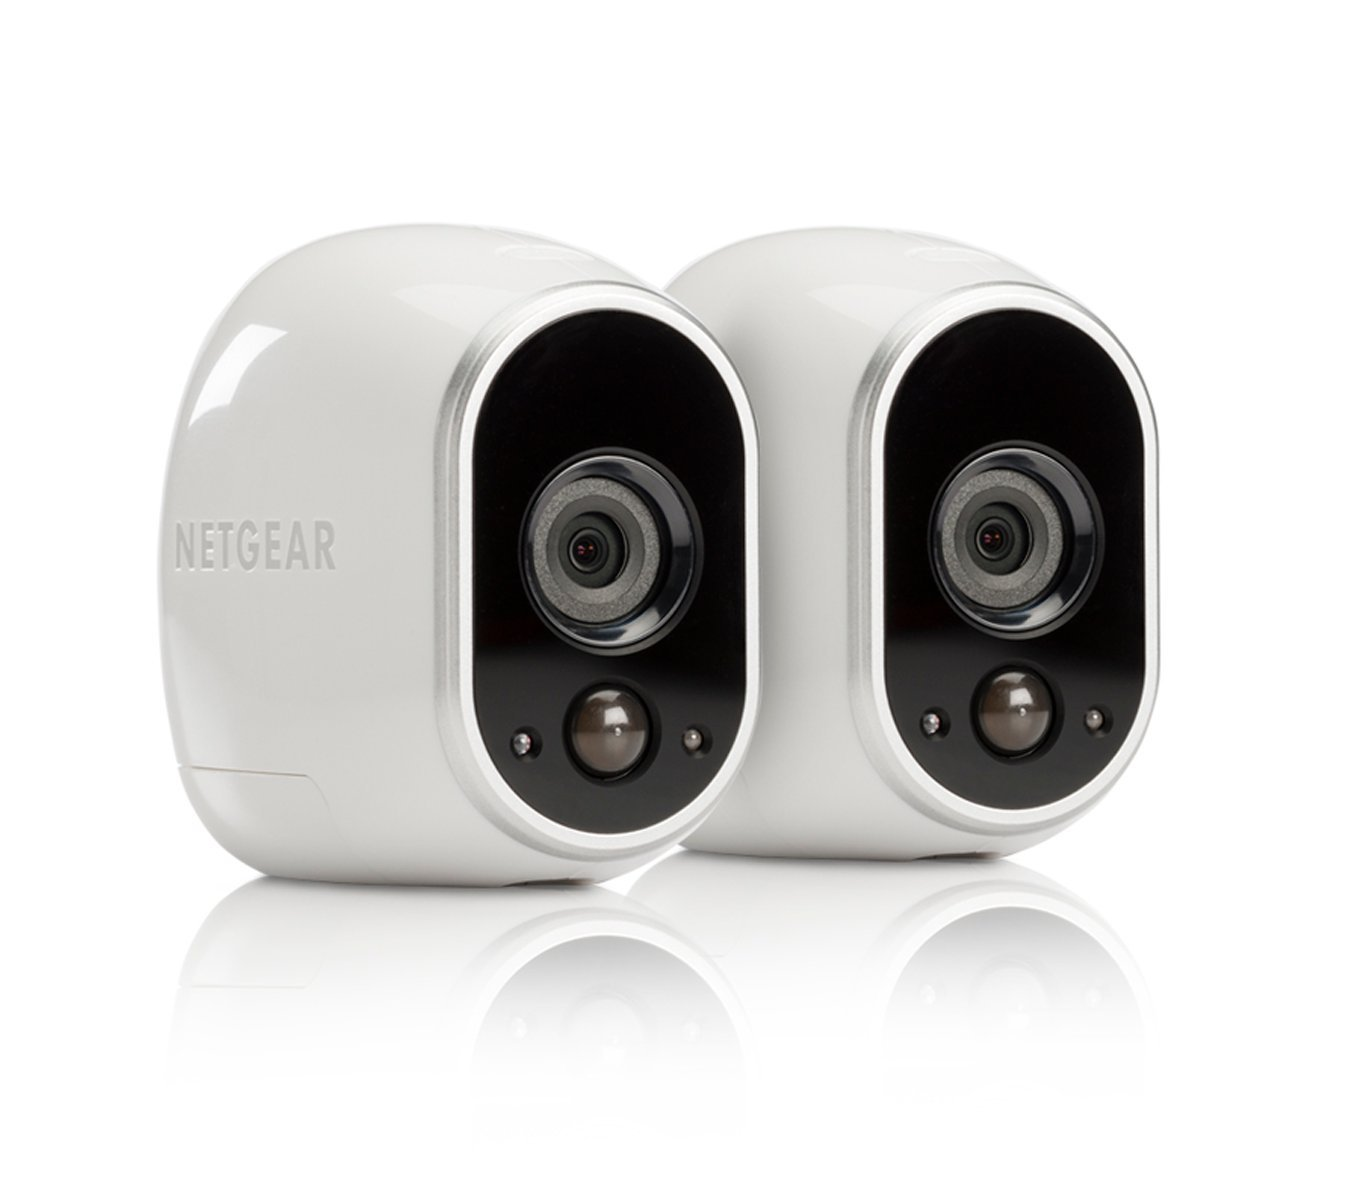 Arlo Security System by NETGEAR - 2 Wire-Free HD Cameras, Indoor/Outdoor, Night Vision (VMS3230C) with Extra Outdoor Mount (VMA1000) - New Version